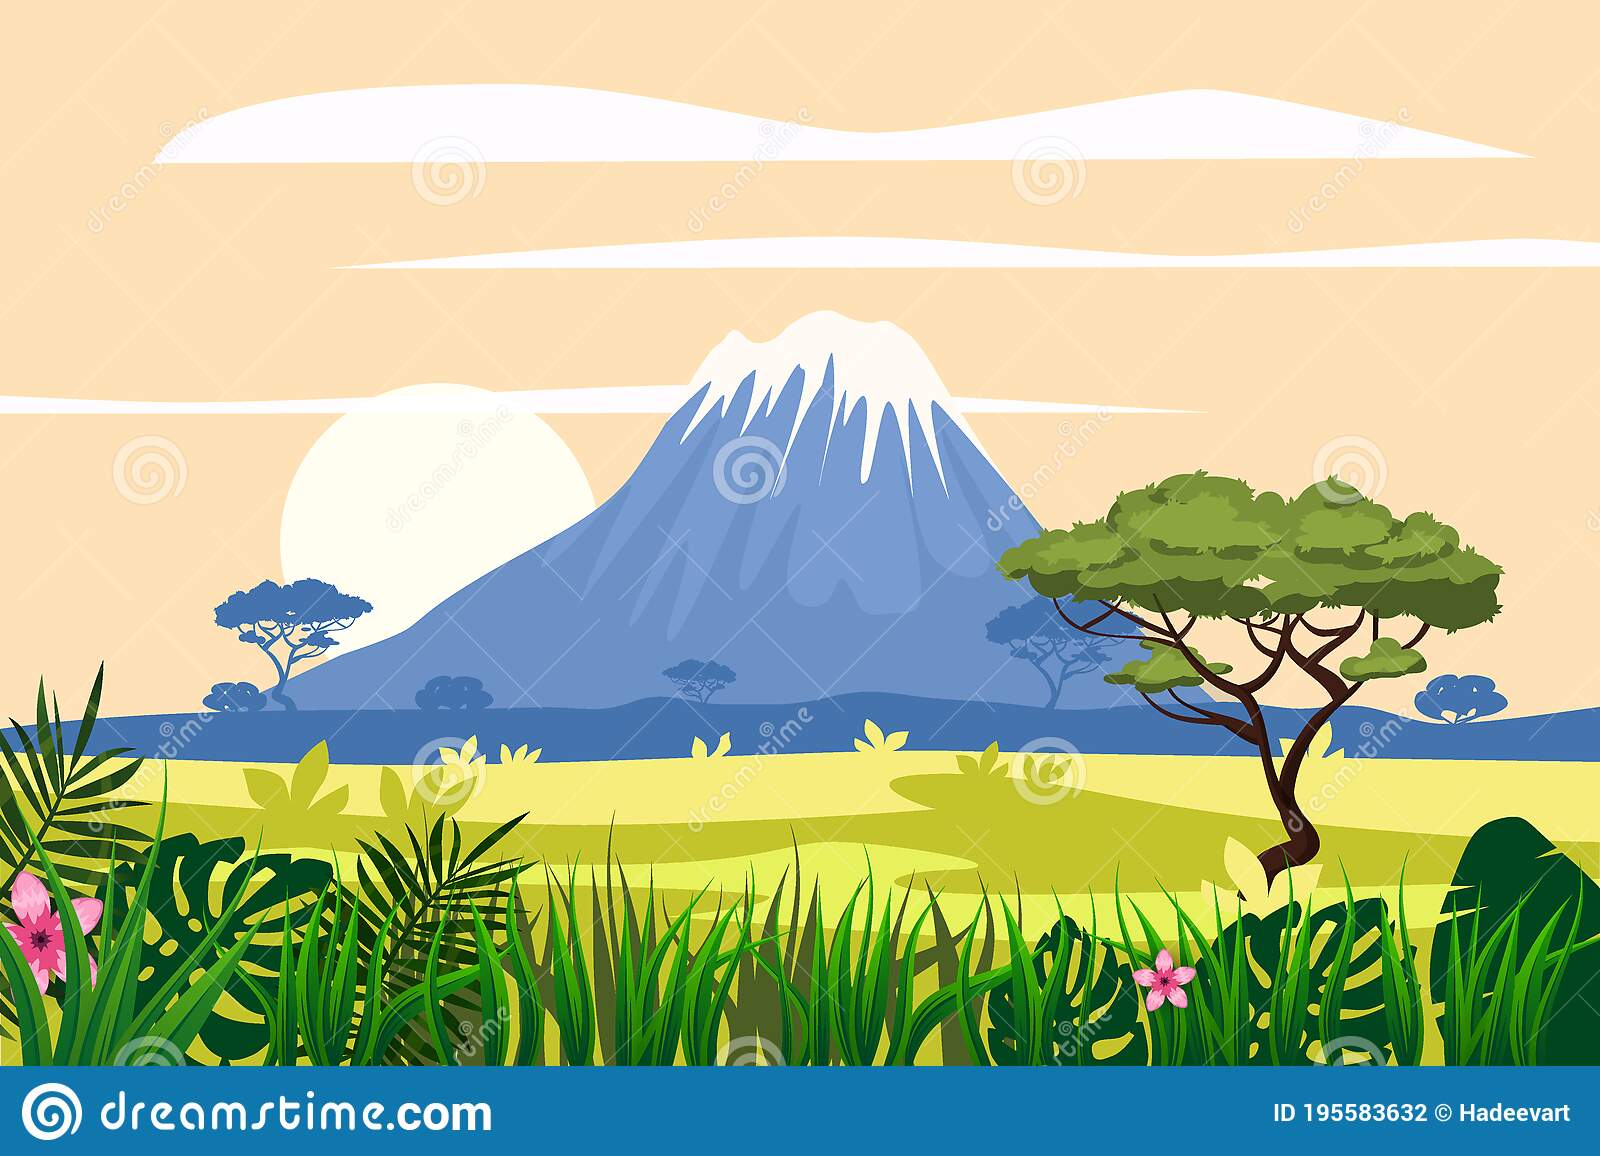 Protect your plants with onsite materials. African Savannah Landscape Mountains Rainforest Jungle Scenery Silhouette Bright Flora With Ferns And Flowers Vector Stock Vector Illustration Of Mist Cartoon 195583632